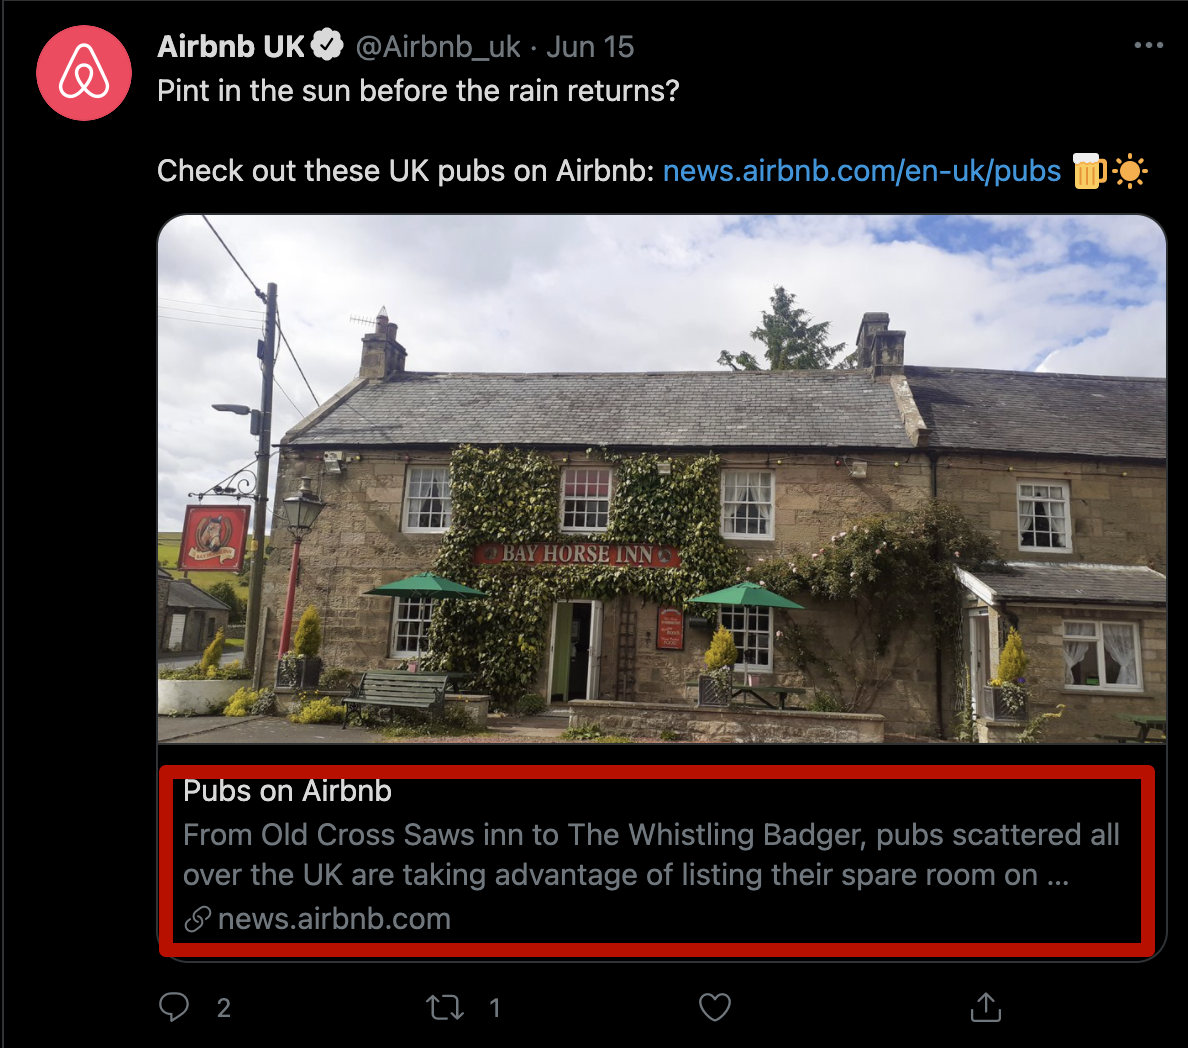 Example of Twitter Card in use